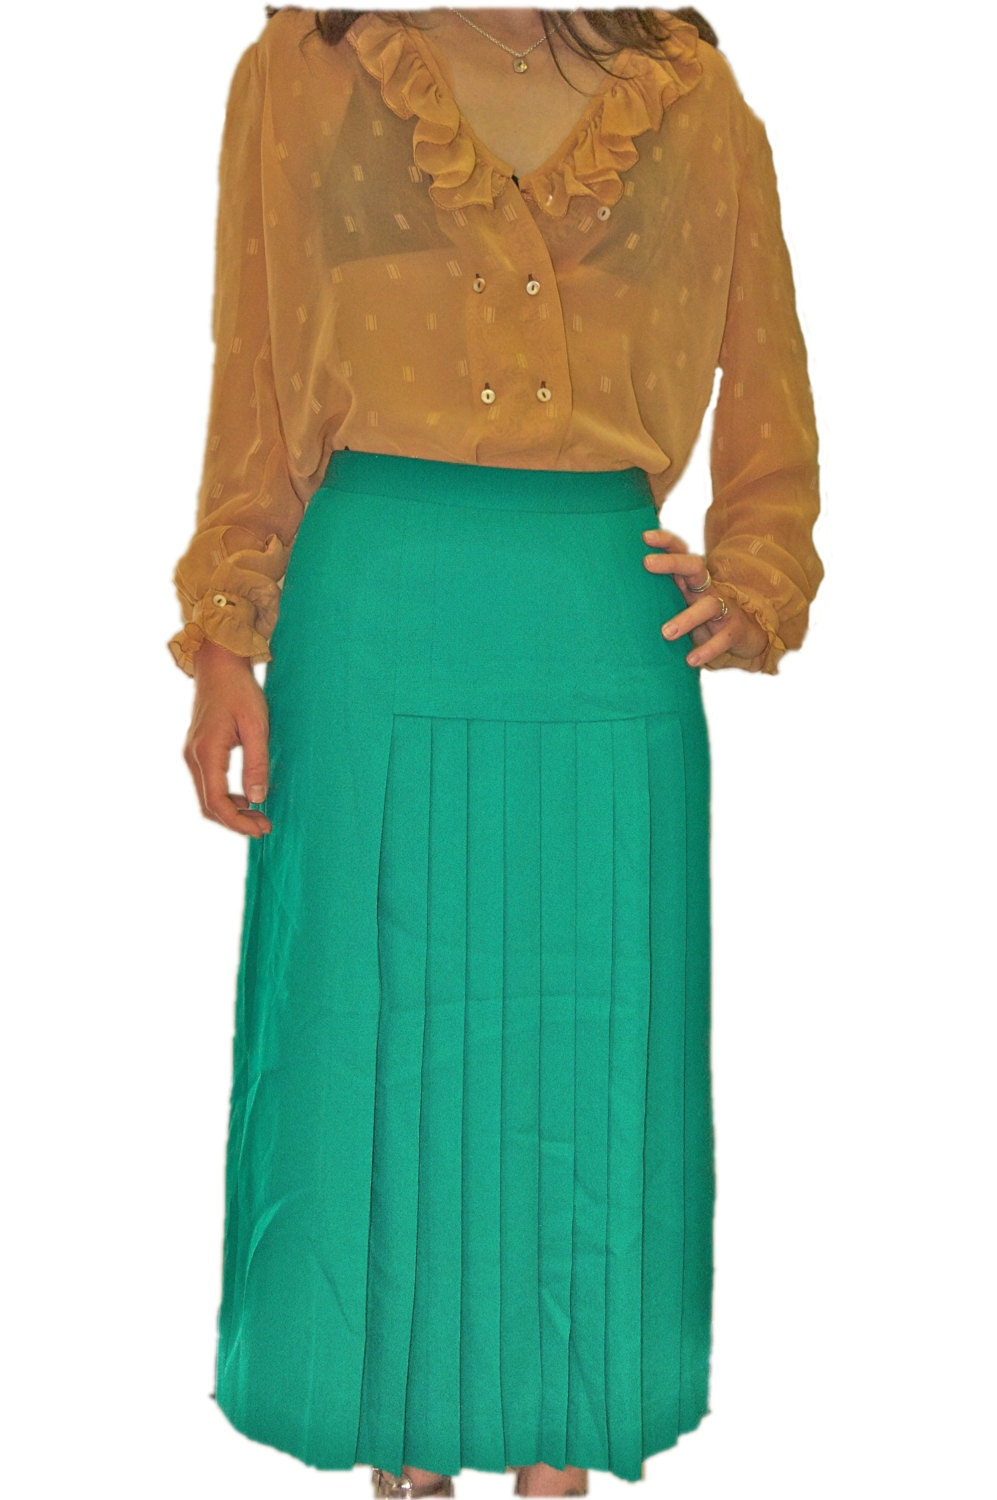 green vintage skirt on etsy